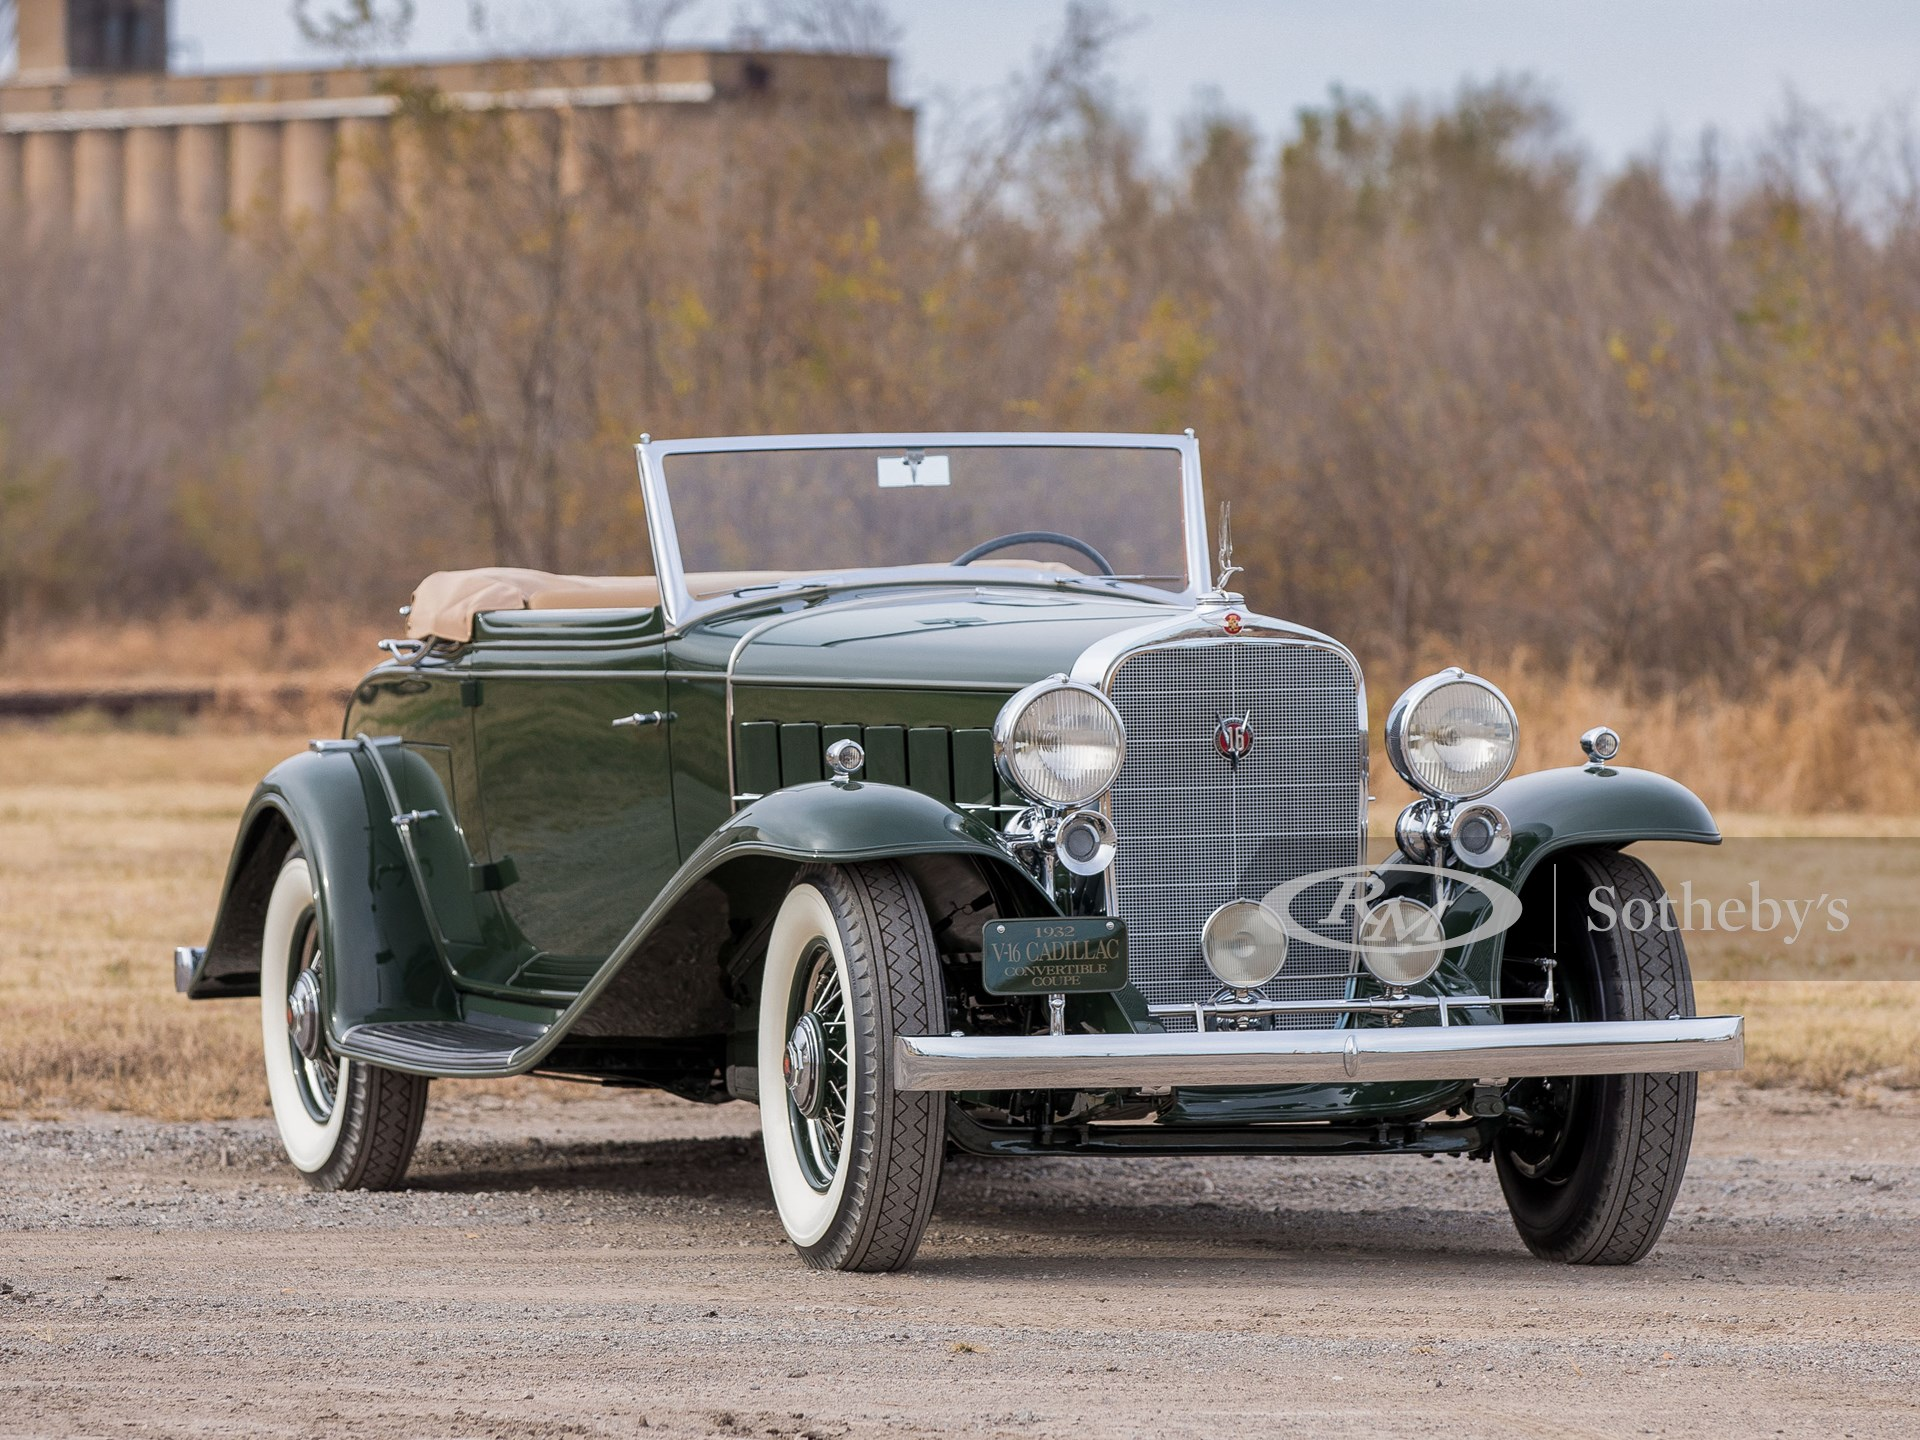 1932 Cadillac V-16 Convertible Coupe by Fisher